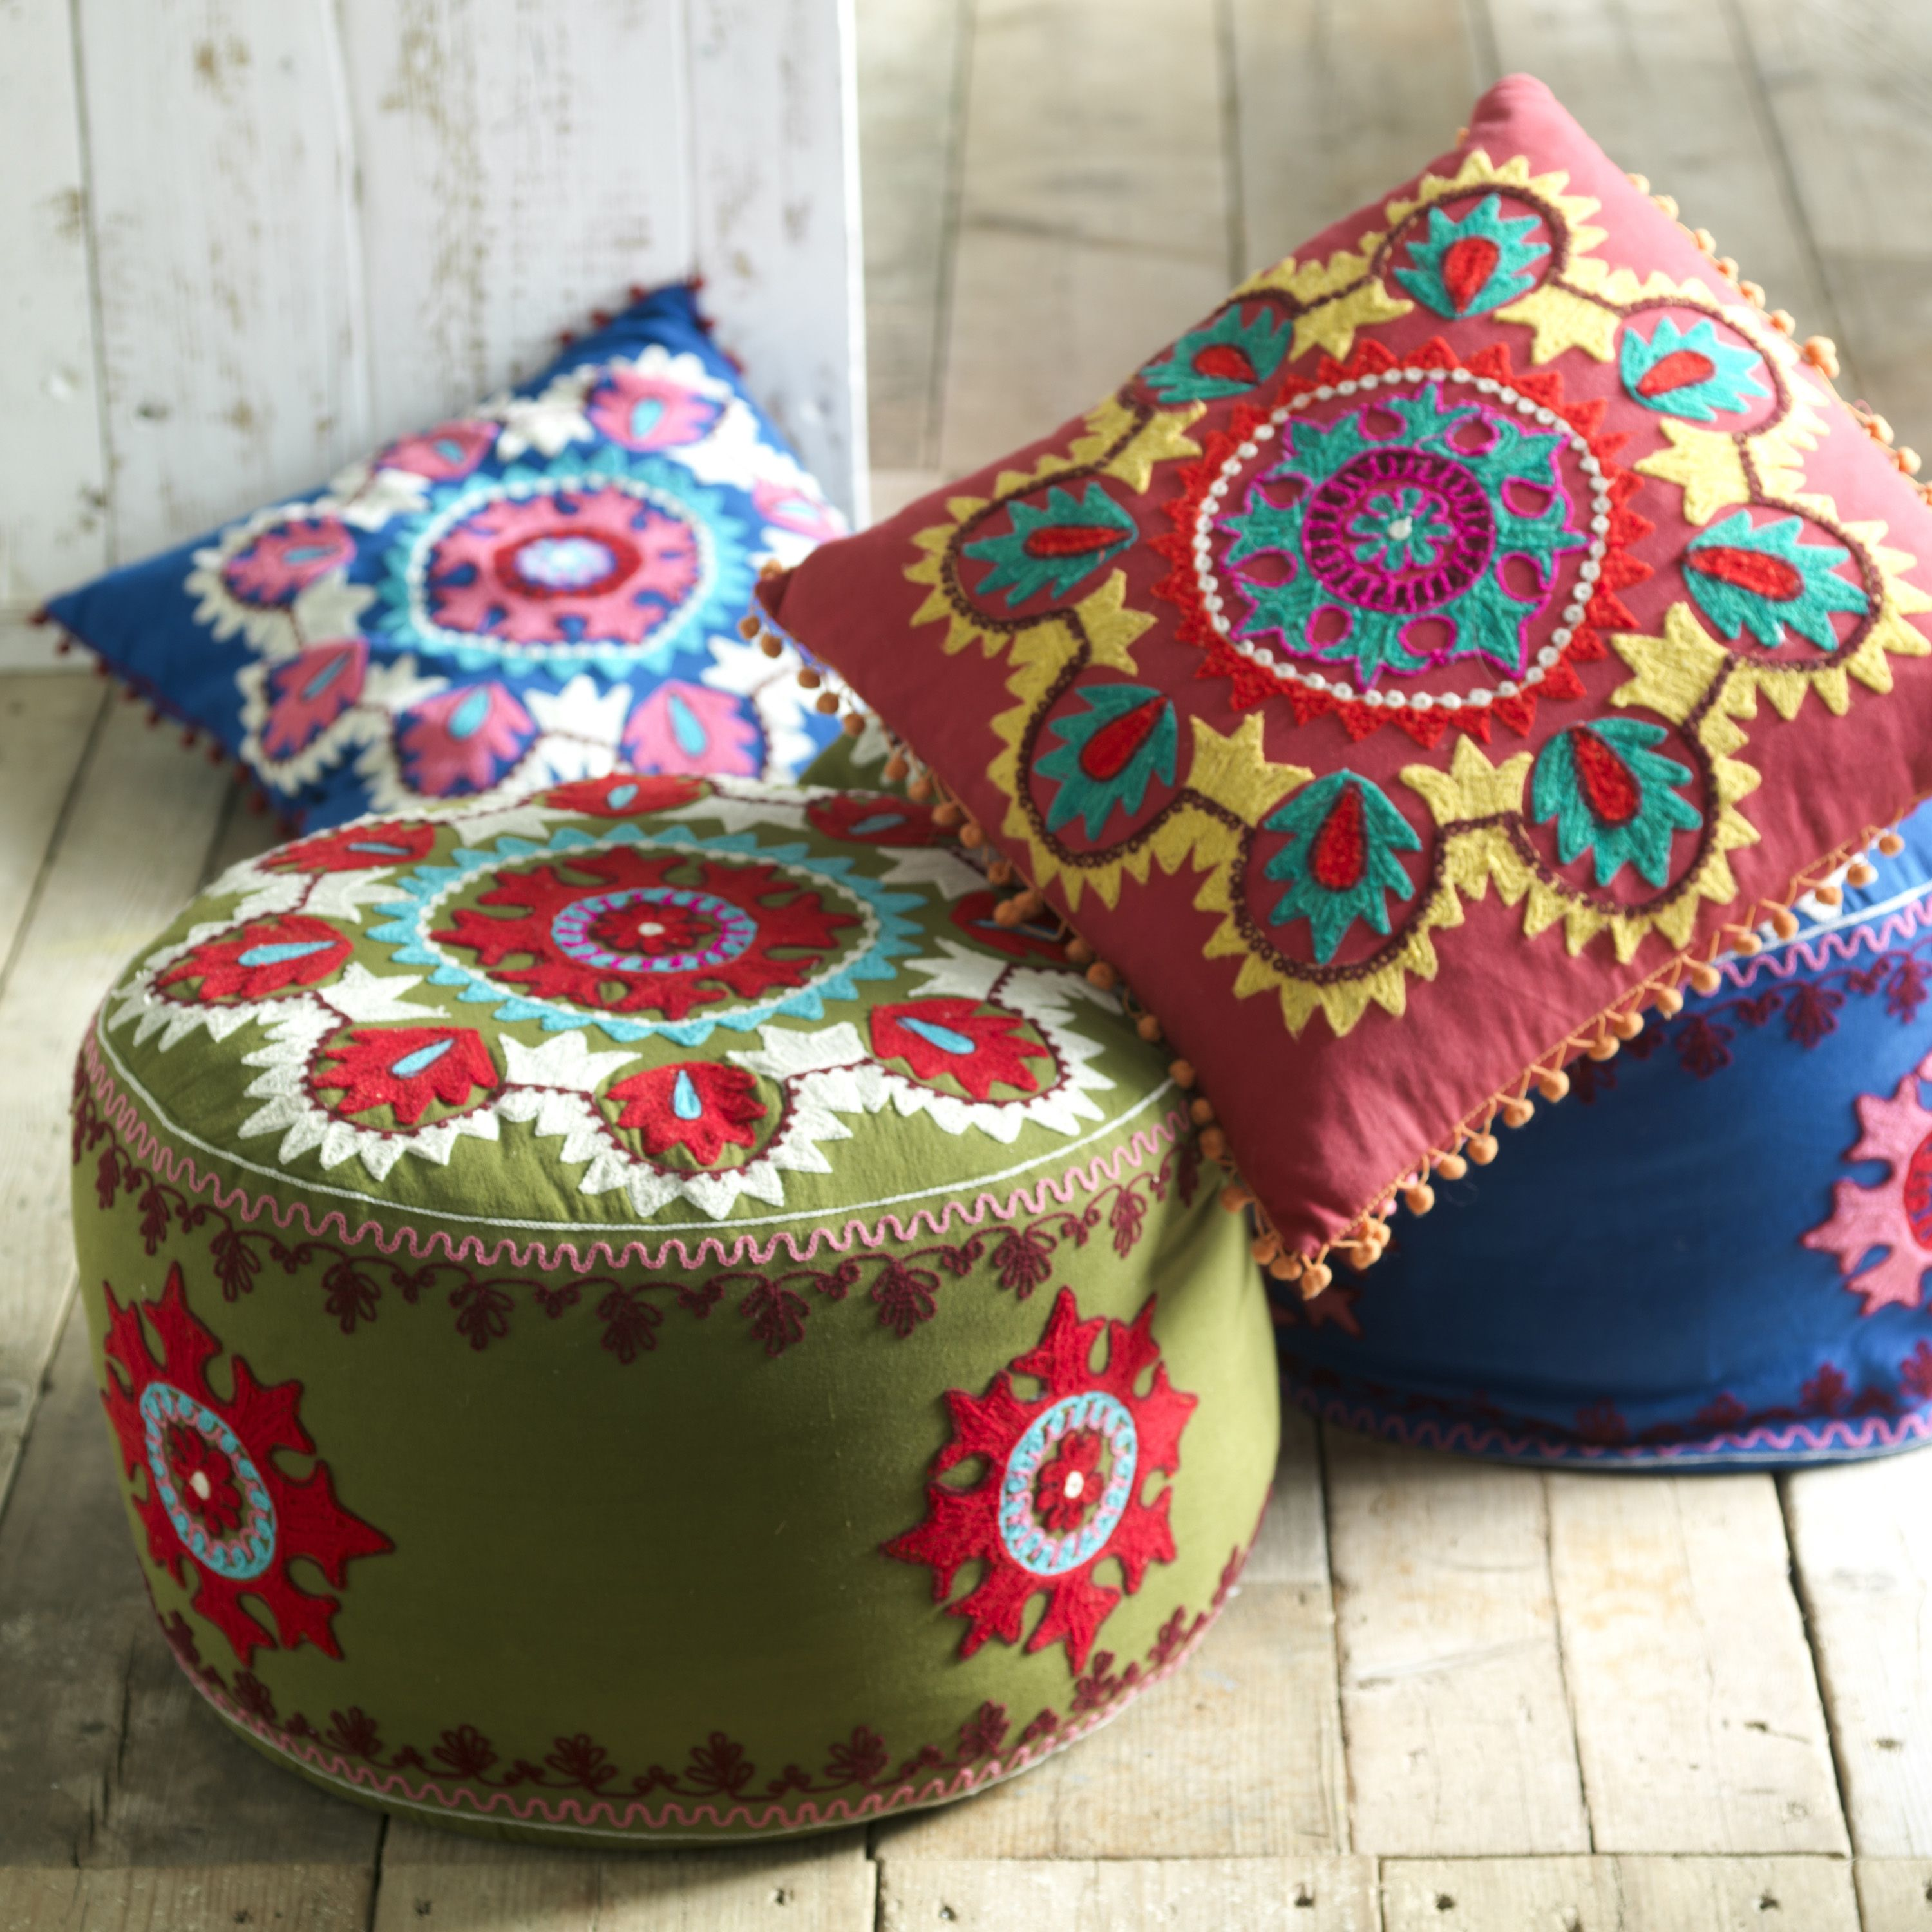 kashmiri embroidered pouf these exquisitely beautiful poufs and  - kashmiri embroidered pouf these exquisitely beautiful poufs and cushionsare hand embroidered in kashmir the